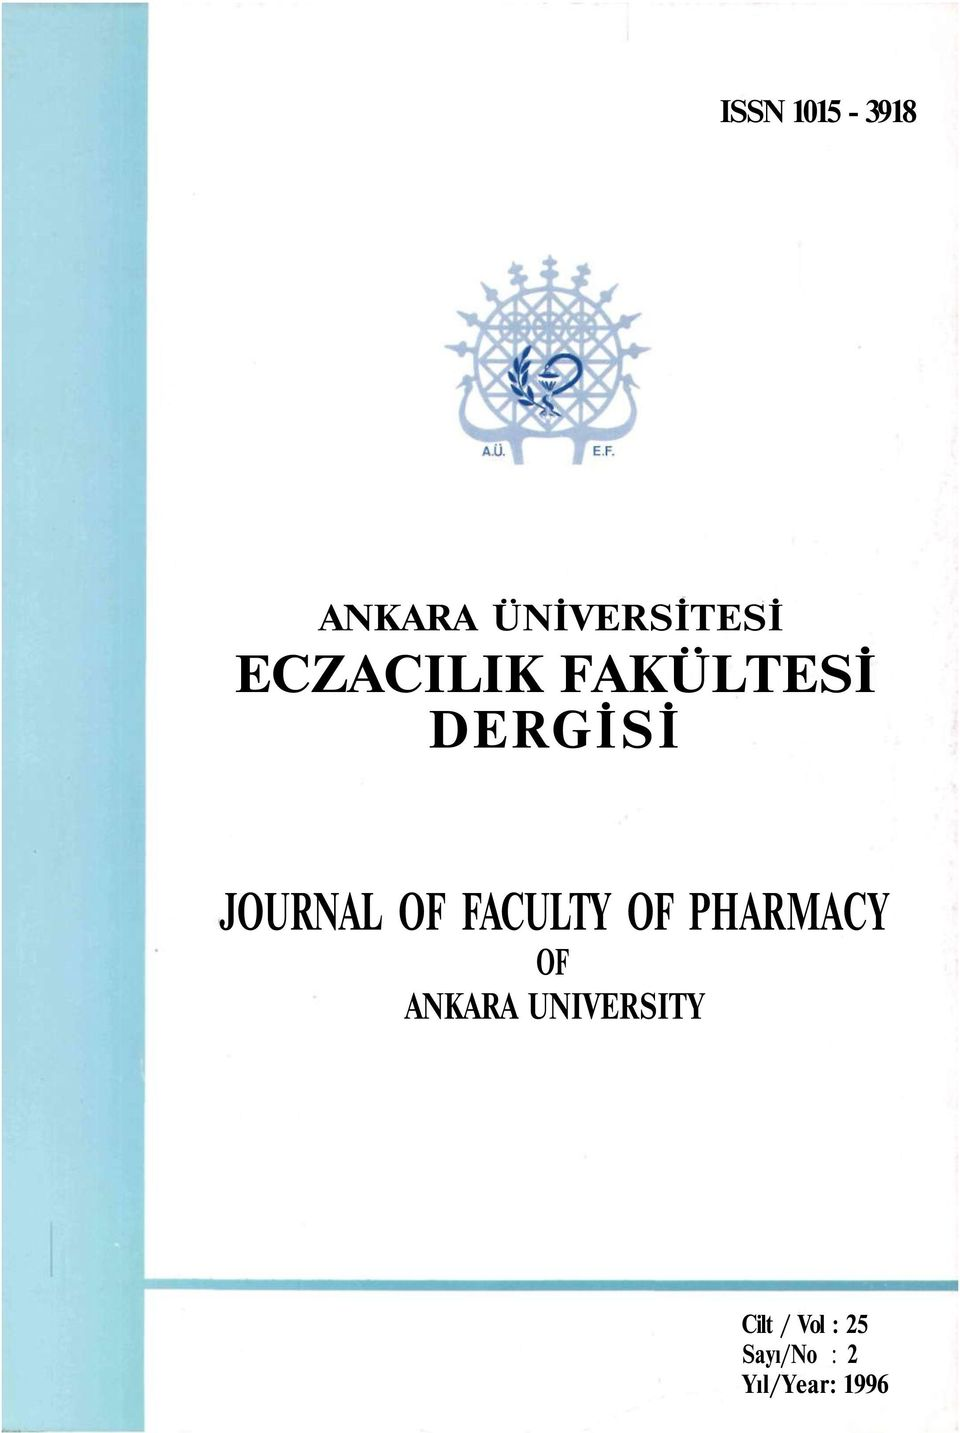 FACULTY OF PHARMACY OF ANKARA